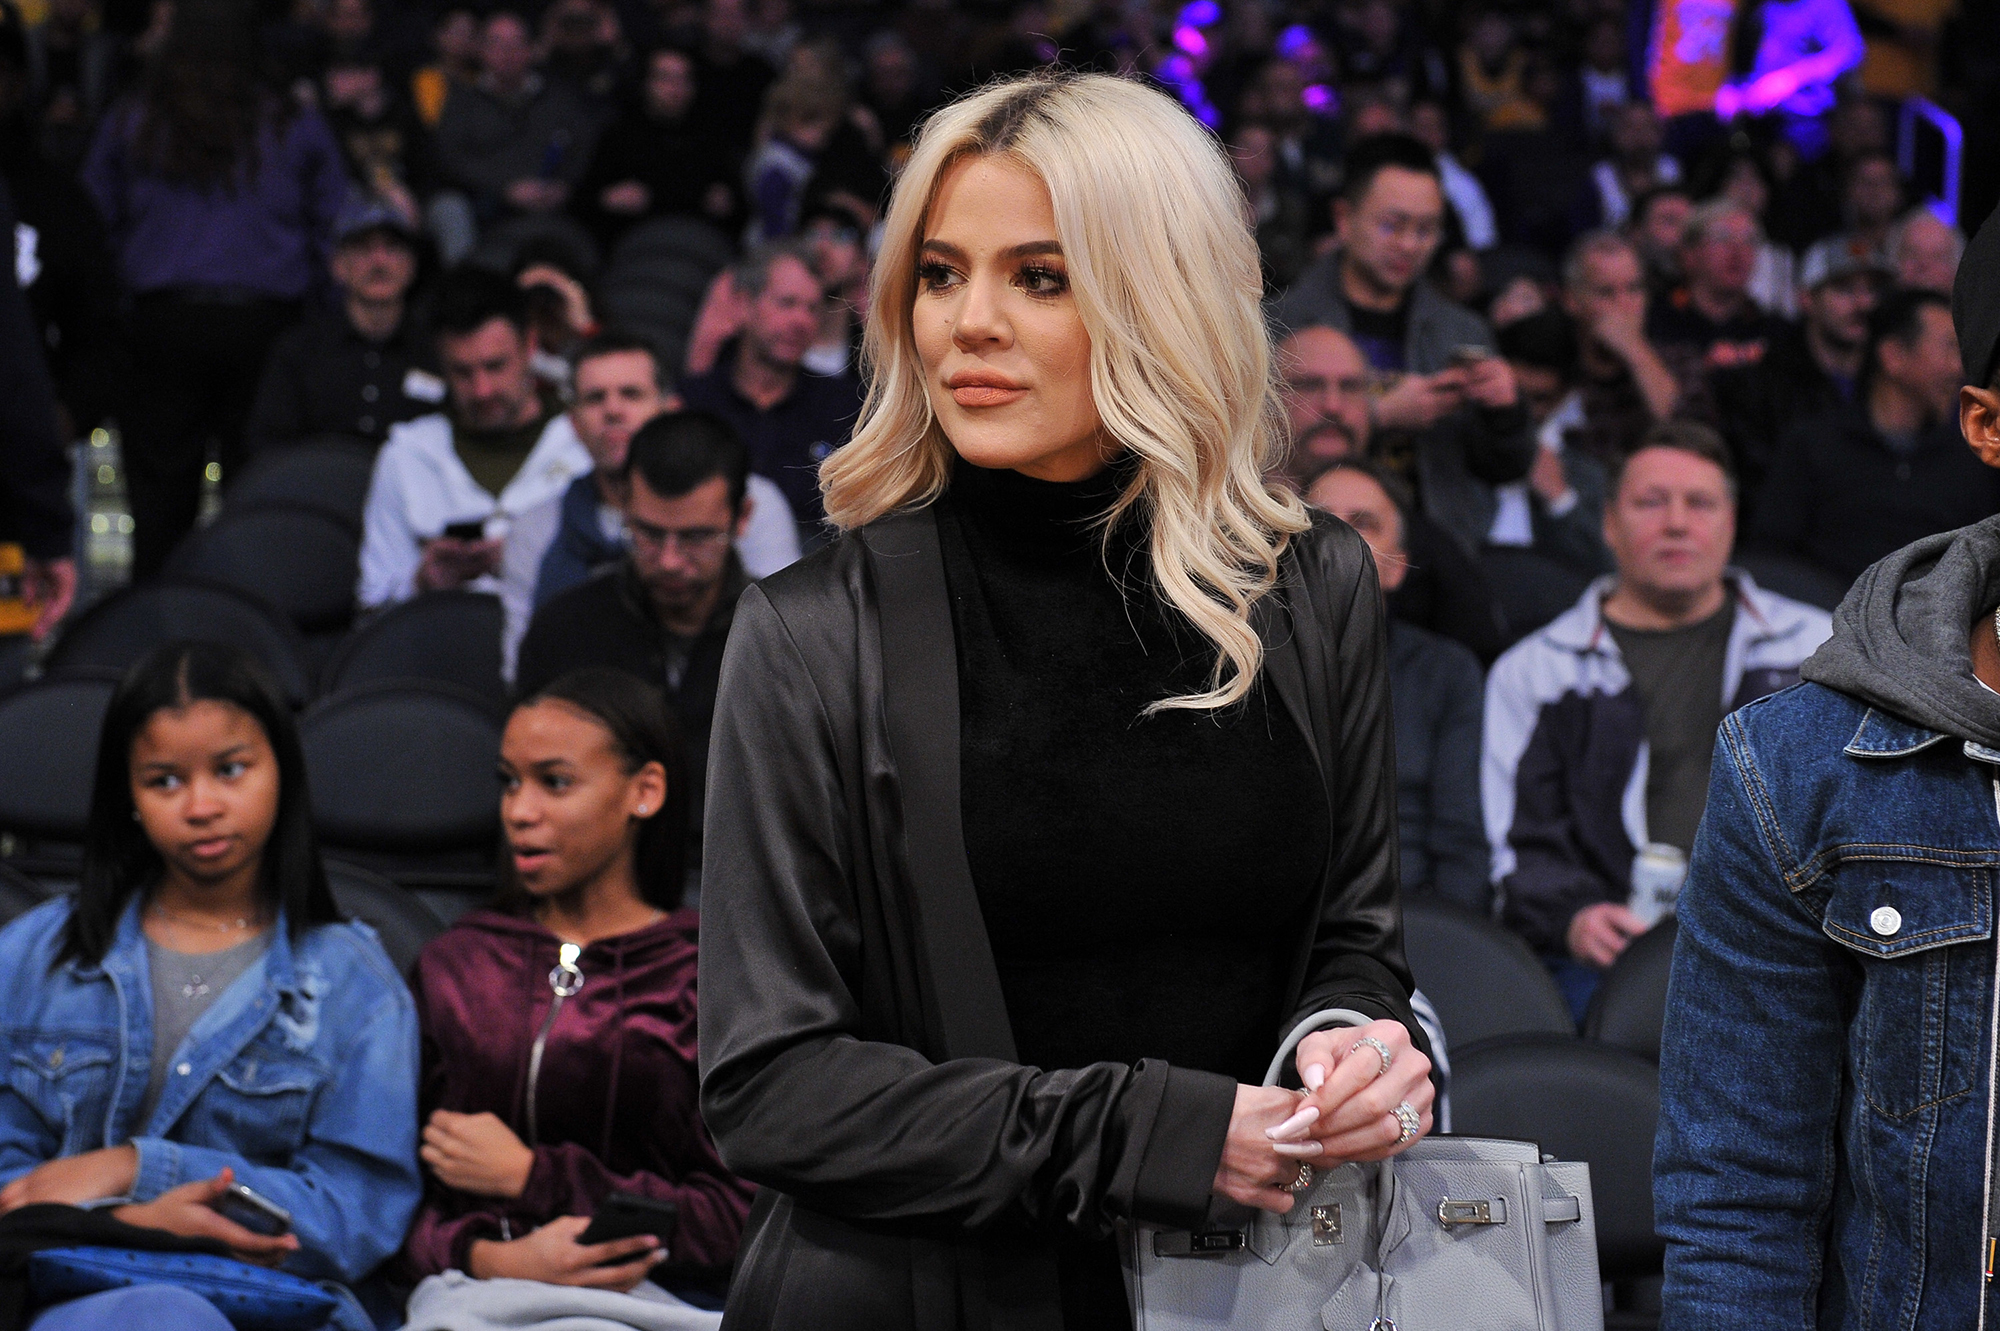 """Khloe Kardashian Supports Beau Tristan Thompson Courtside at Cleveland Cavaliers Game - Kardashian looked picture-perfect in a black turtleneck and long jacket. Thompson recently gushed over his love in the comments section of an Instagram post writing, """"True's mommy fine as hell."""""""